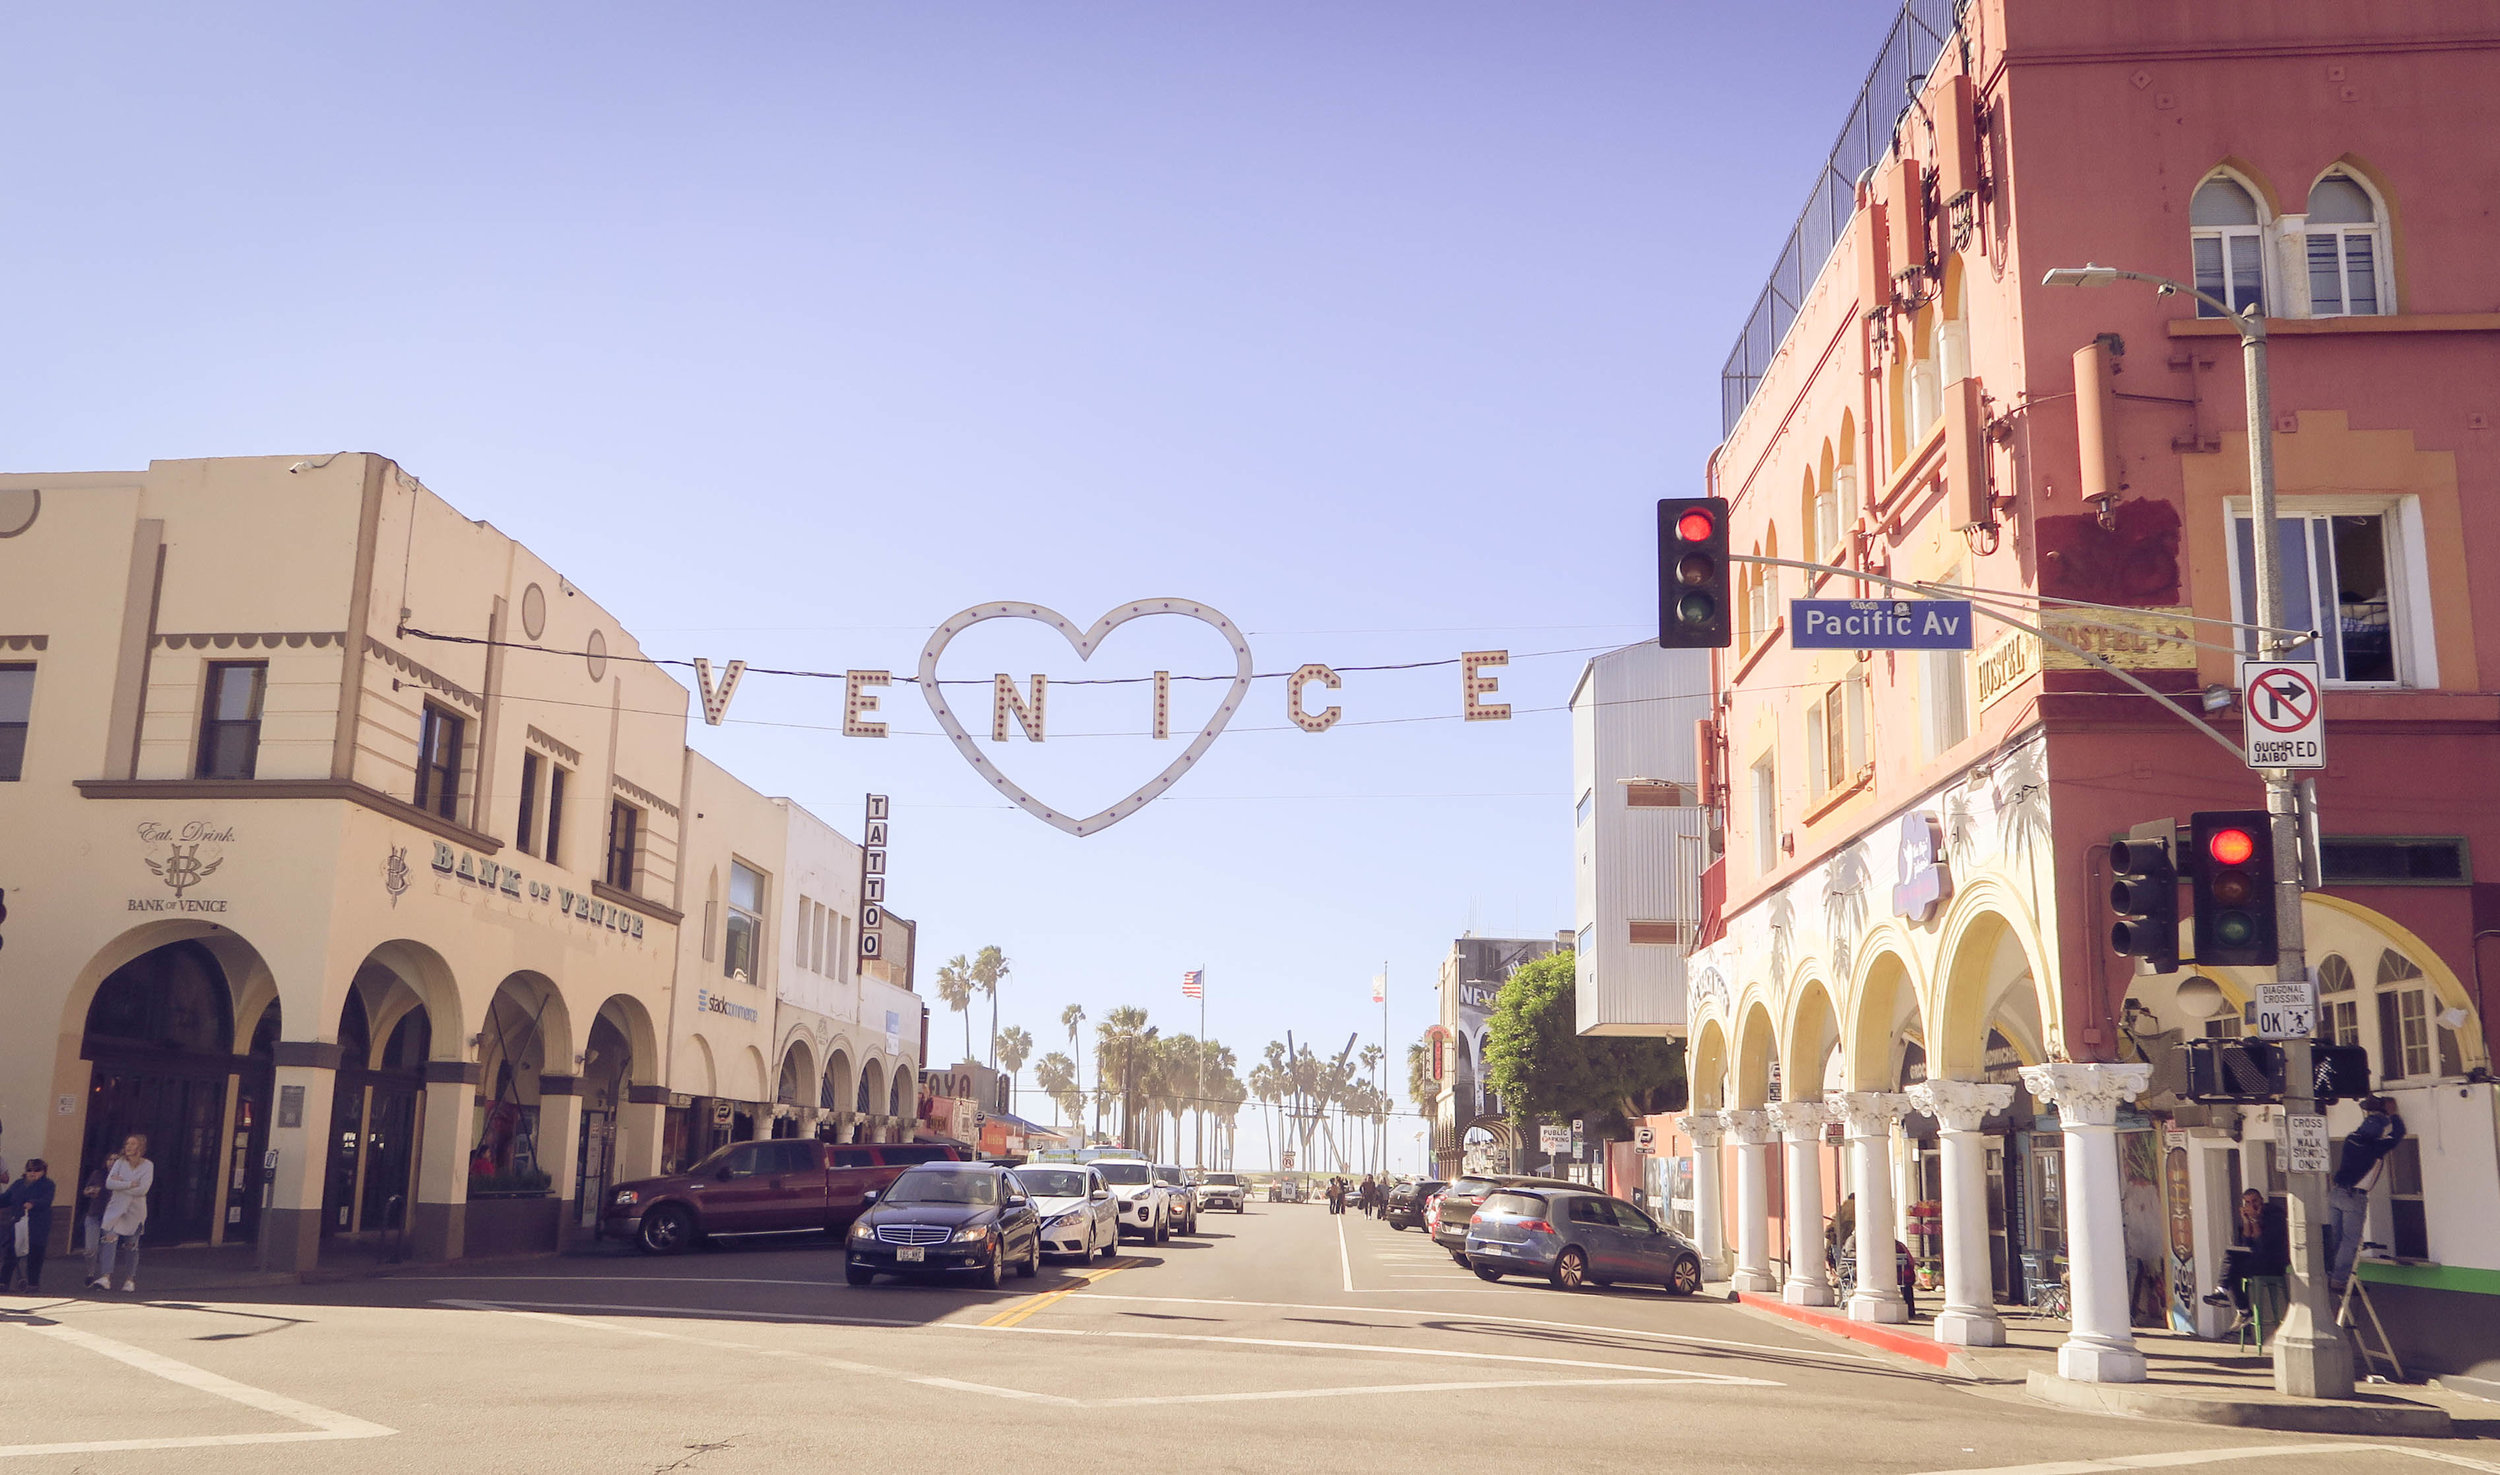 The Venice Beach sign doesn't get any cuter